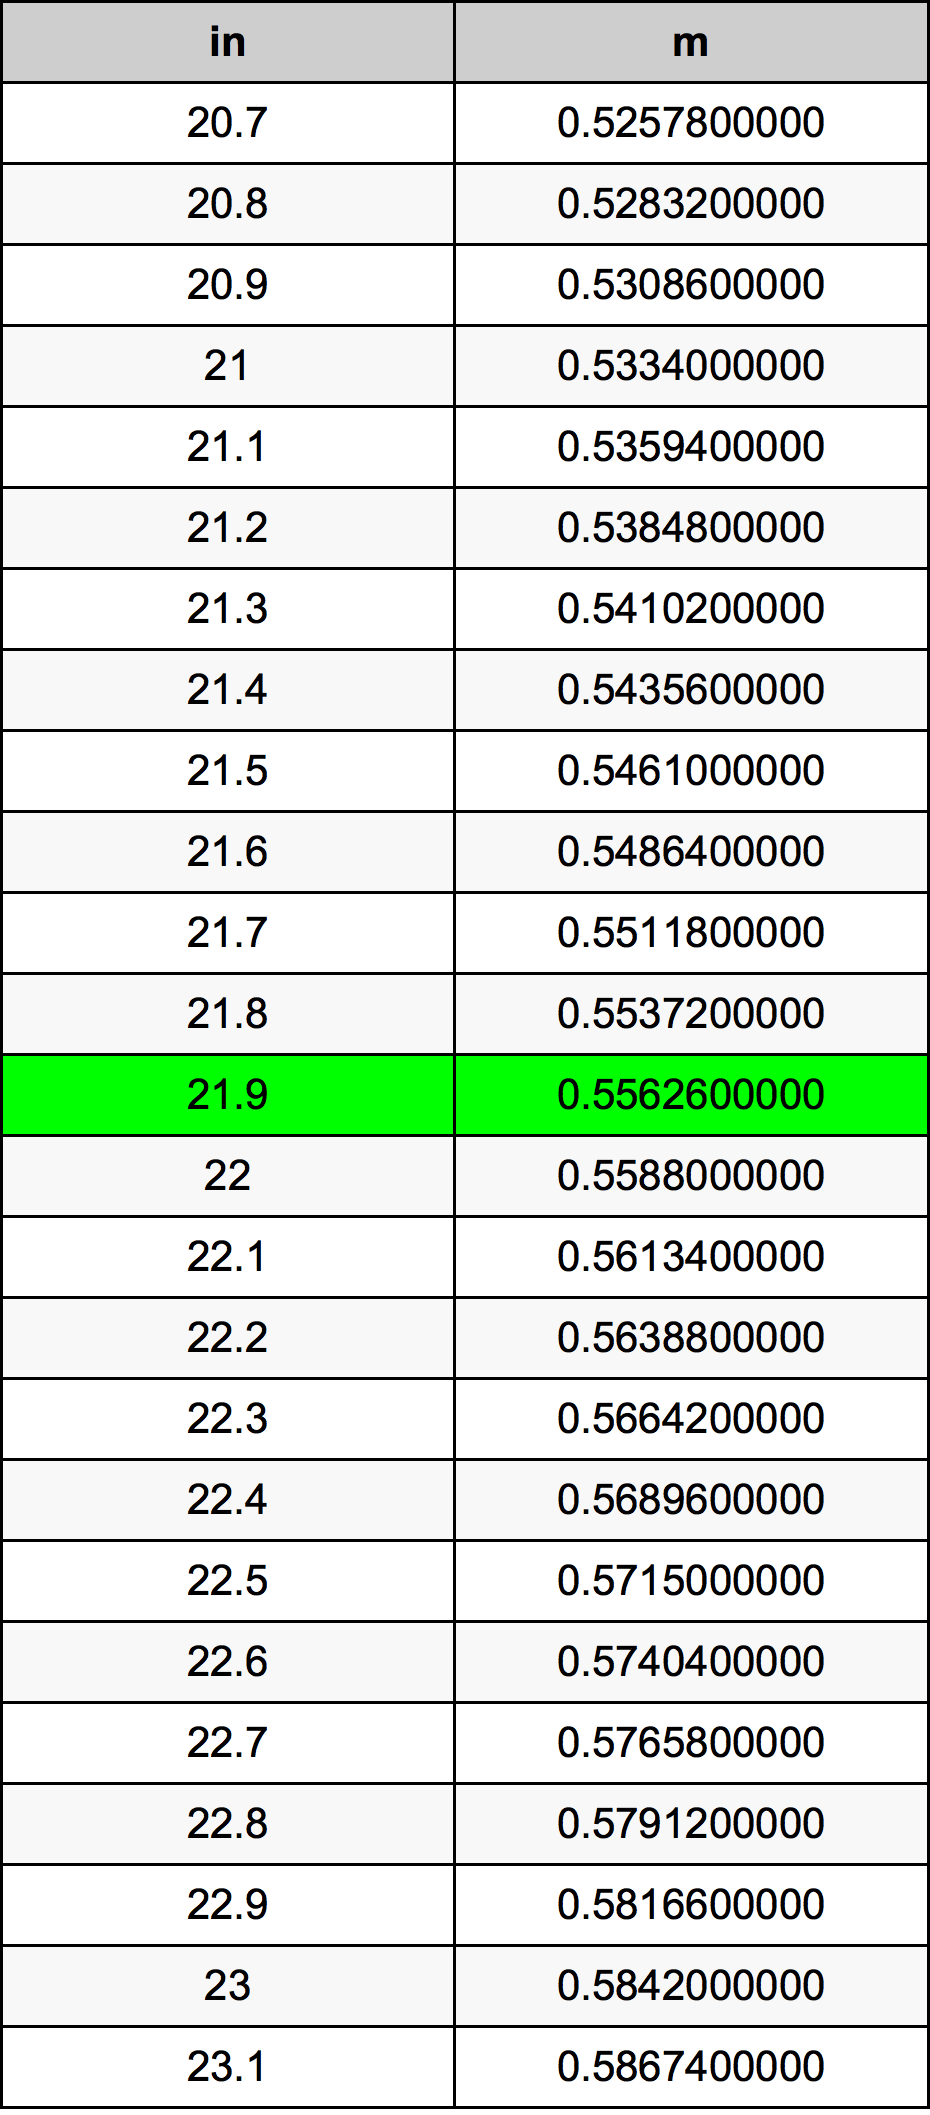 21.9 Inç Table